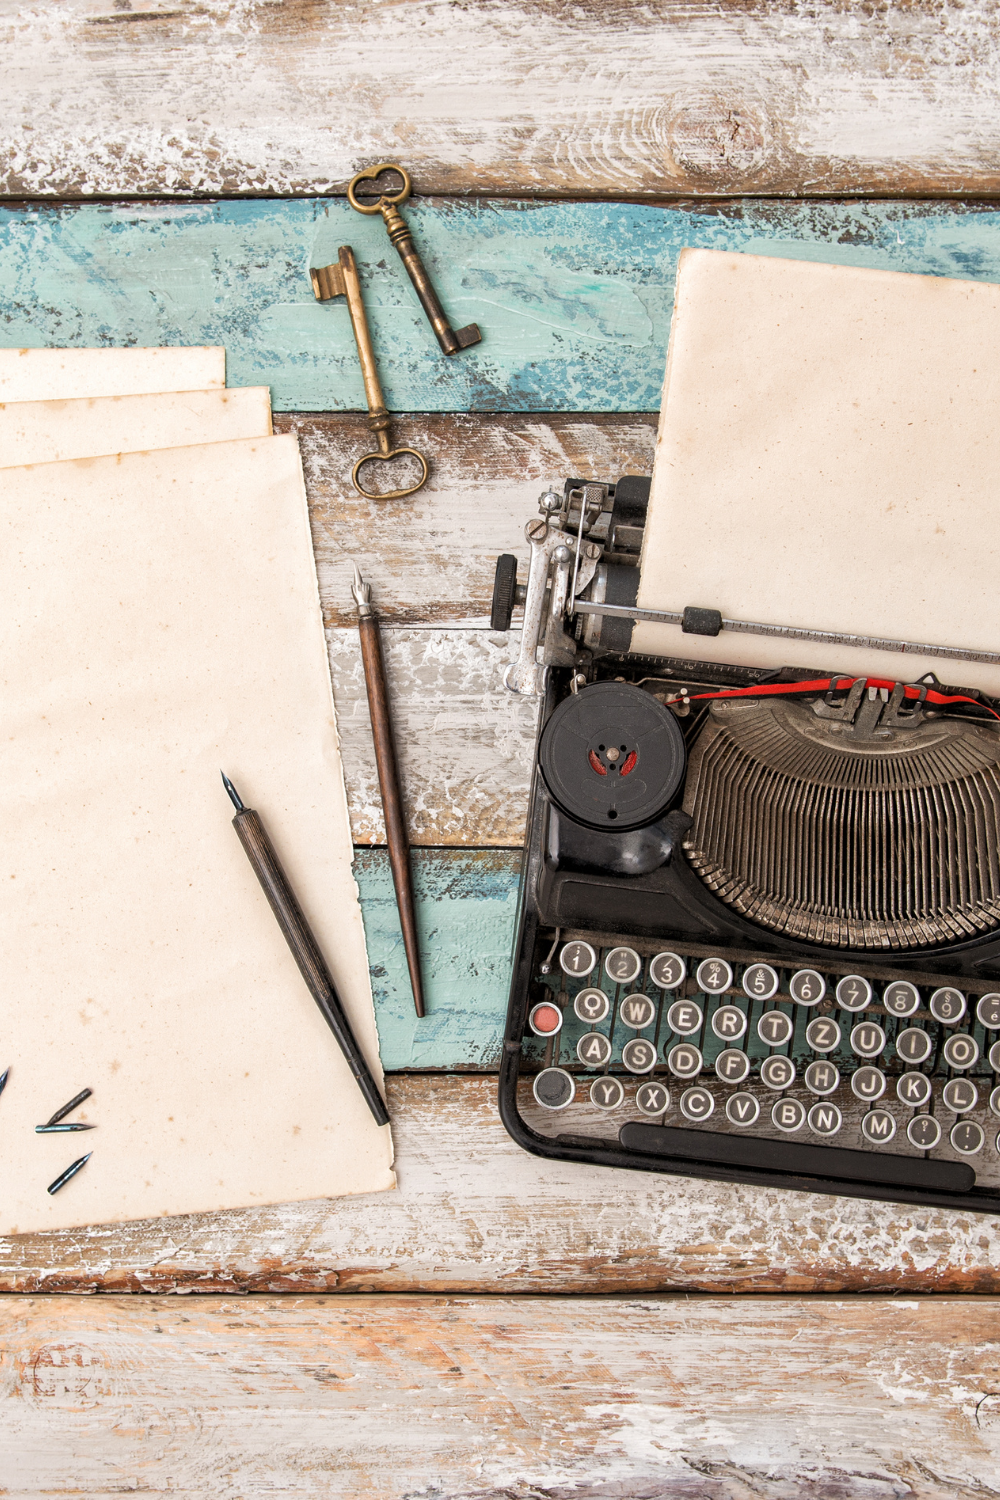 Hiring writers for blog posts are content writers cost-efficient